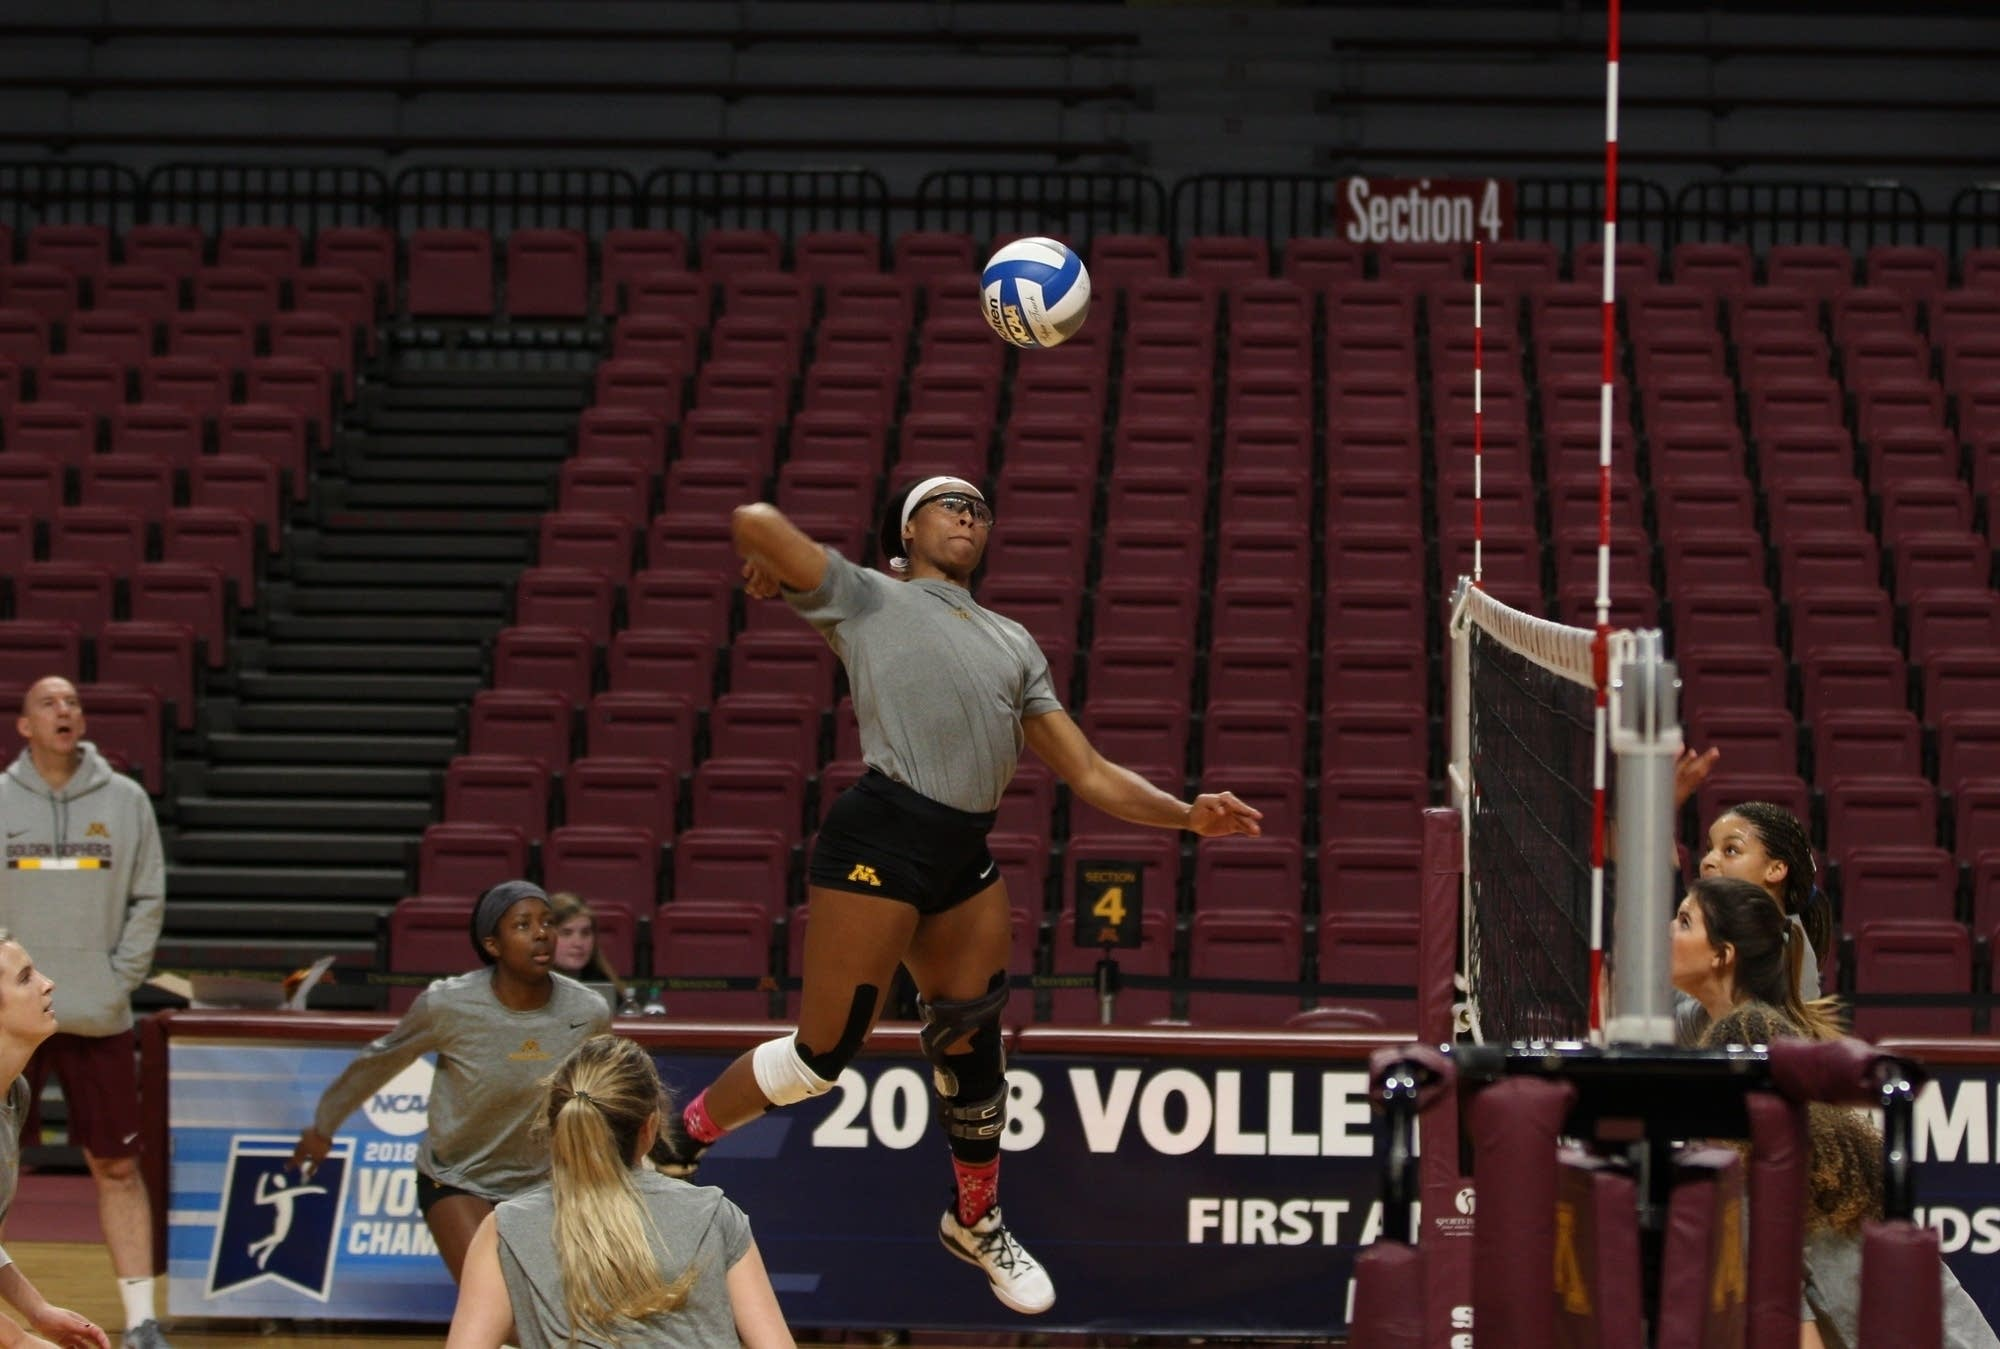 University of Minnesota Junior Taylor Morgan winds up to spike the ball